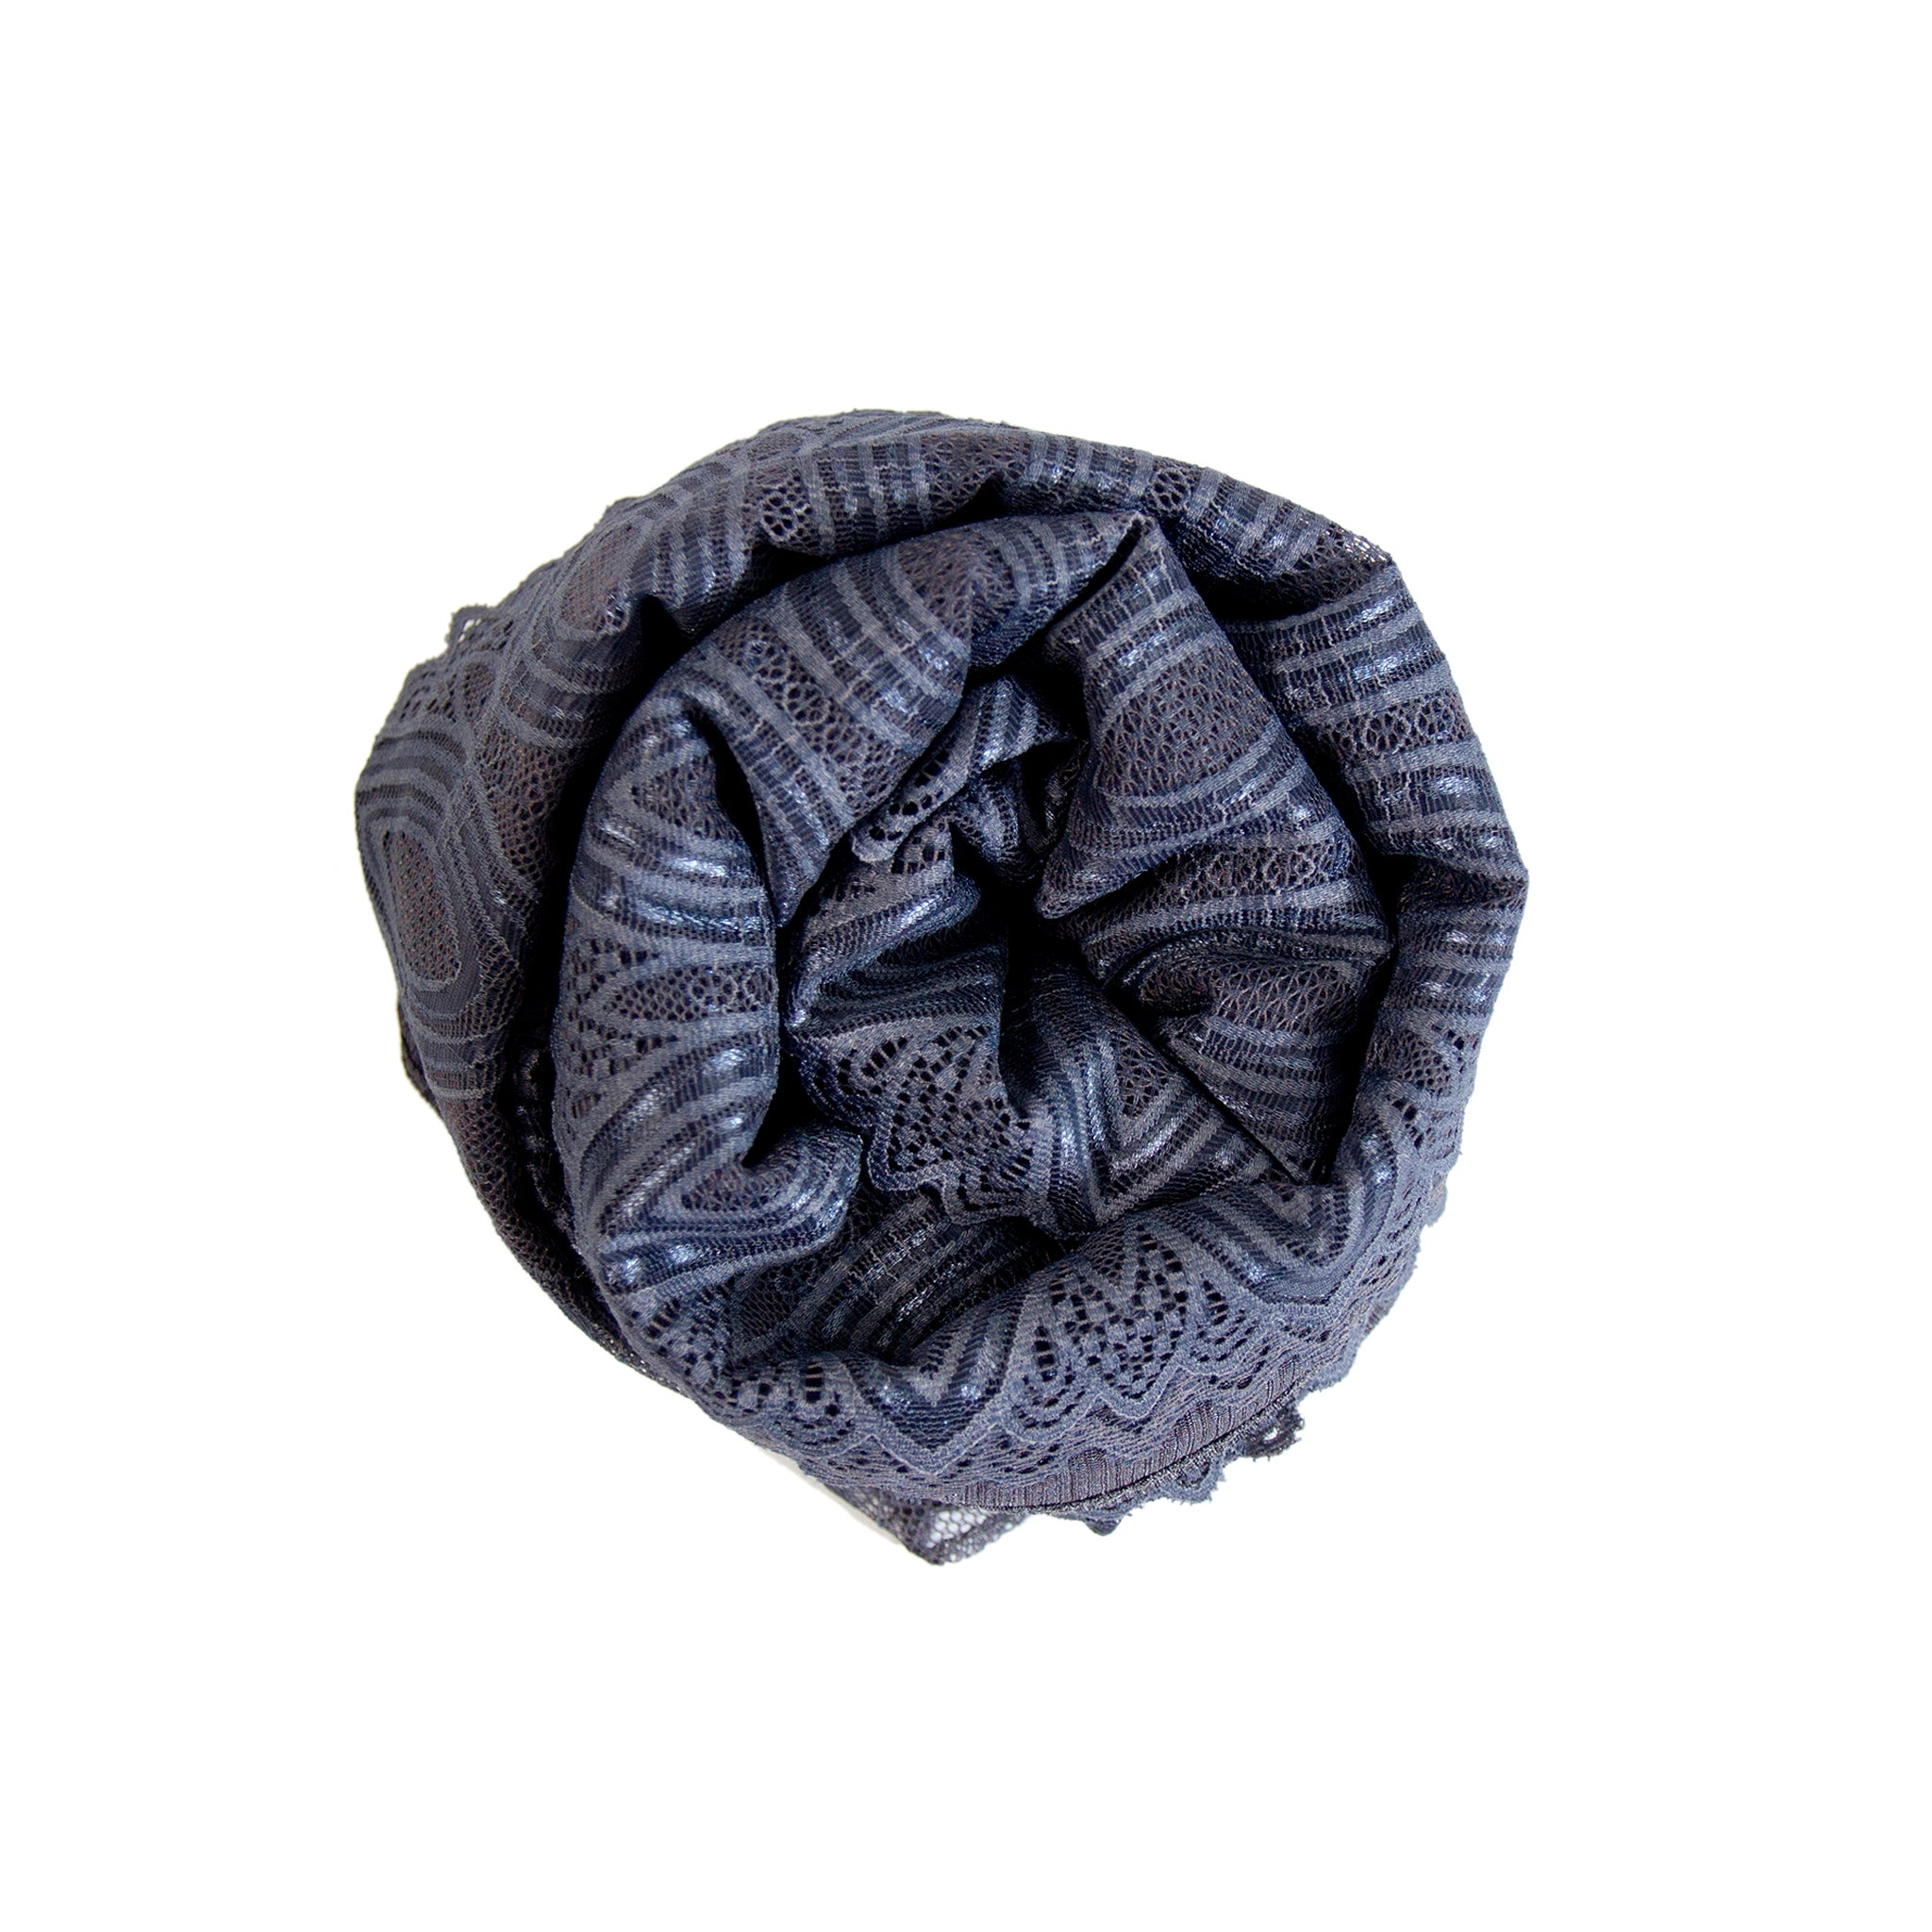 Oval Lace Scarf